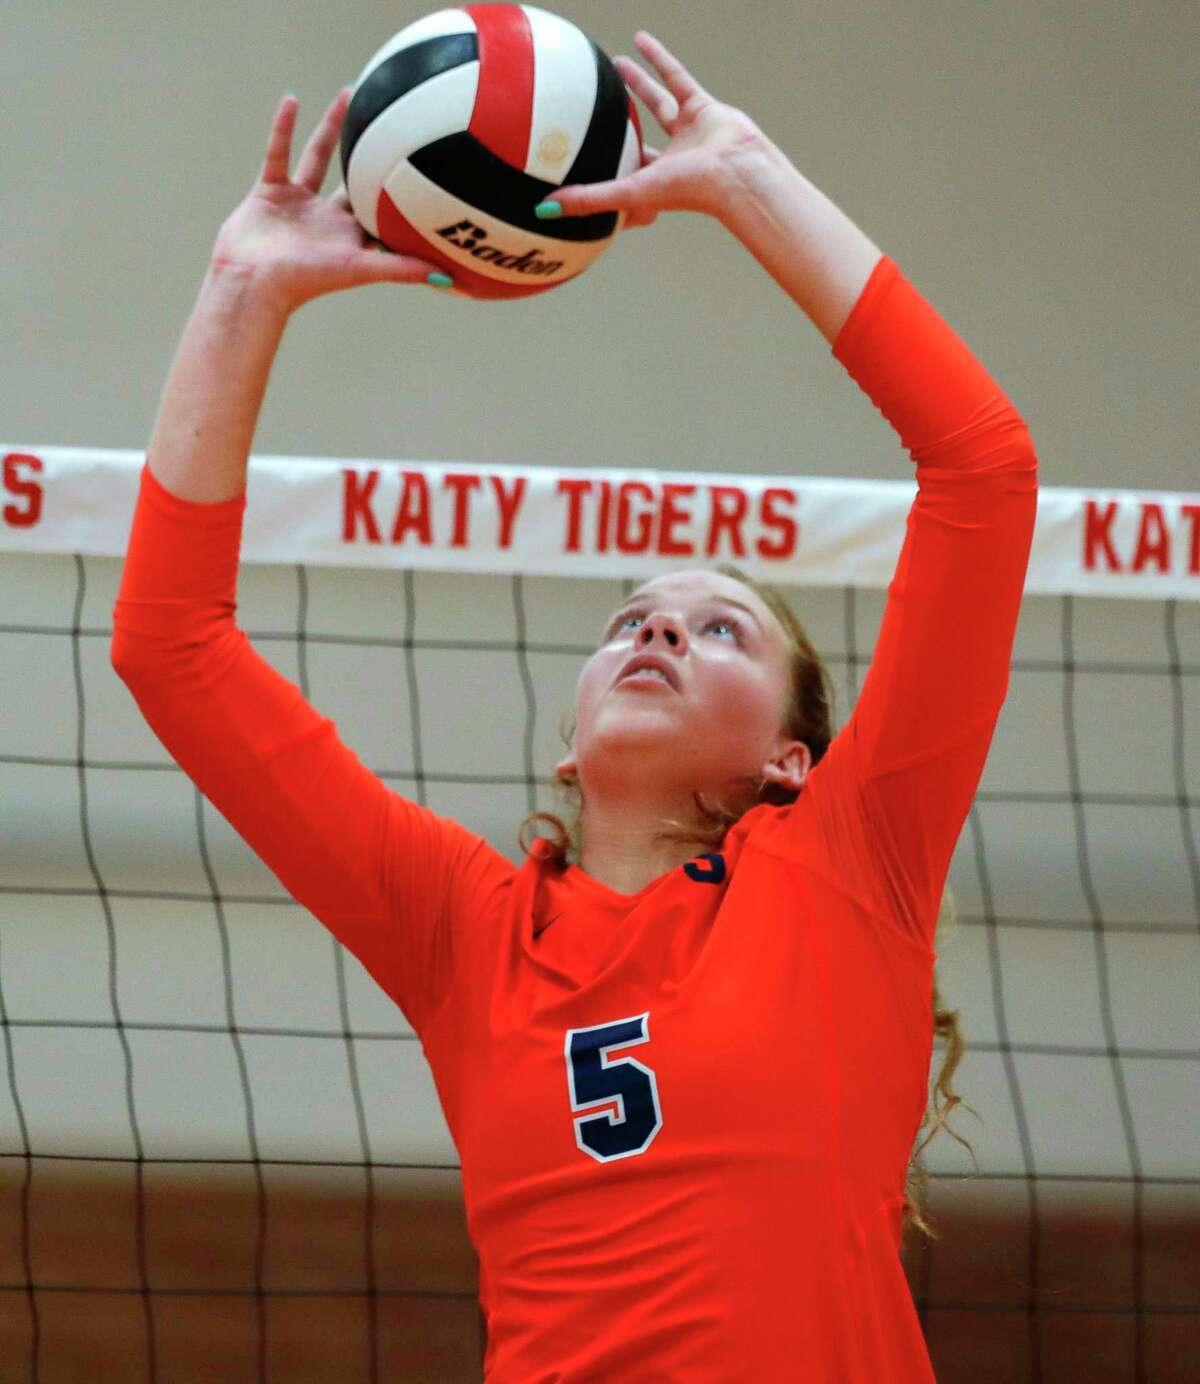 Seven Lakes' Casey Batenhorst (5) sets the ball during a match in the Katy/Cy-Fair Tournament at Katy High School, Friday, Aug. 13, 2021, in Katy.